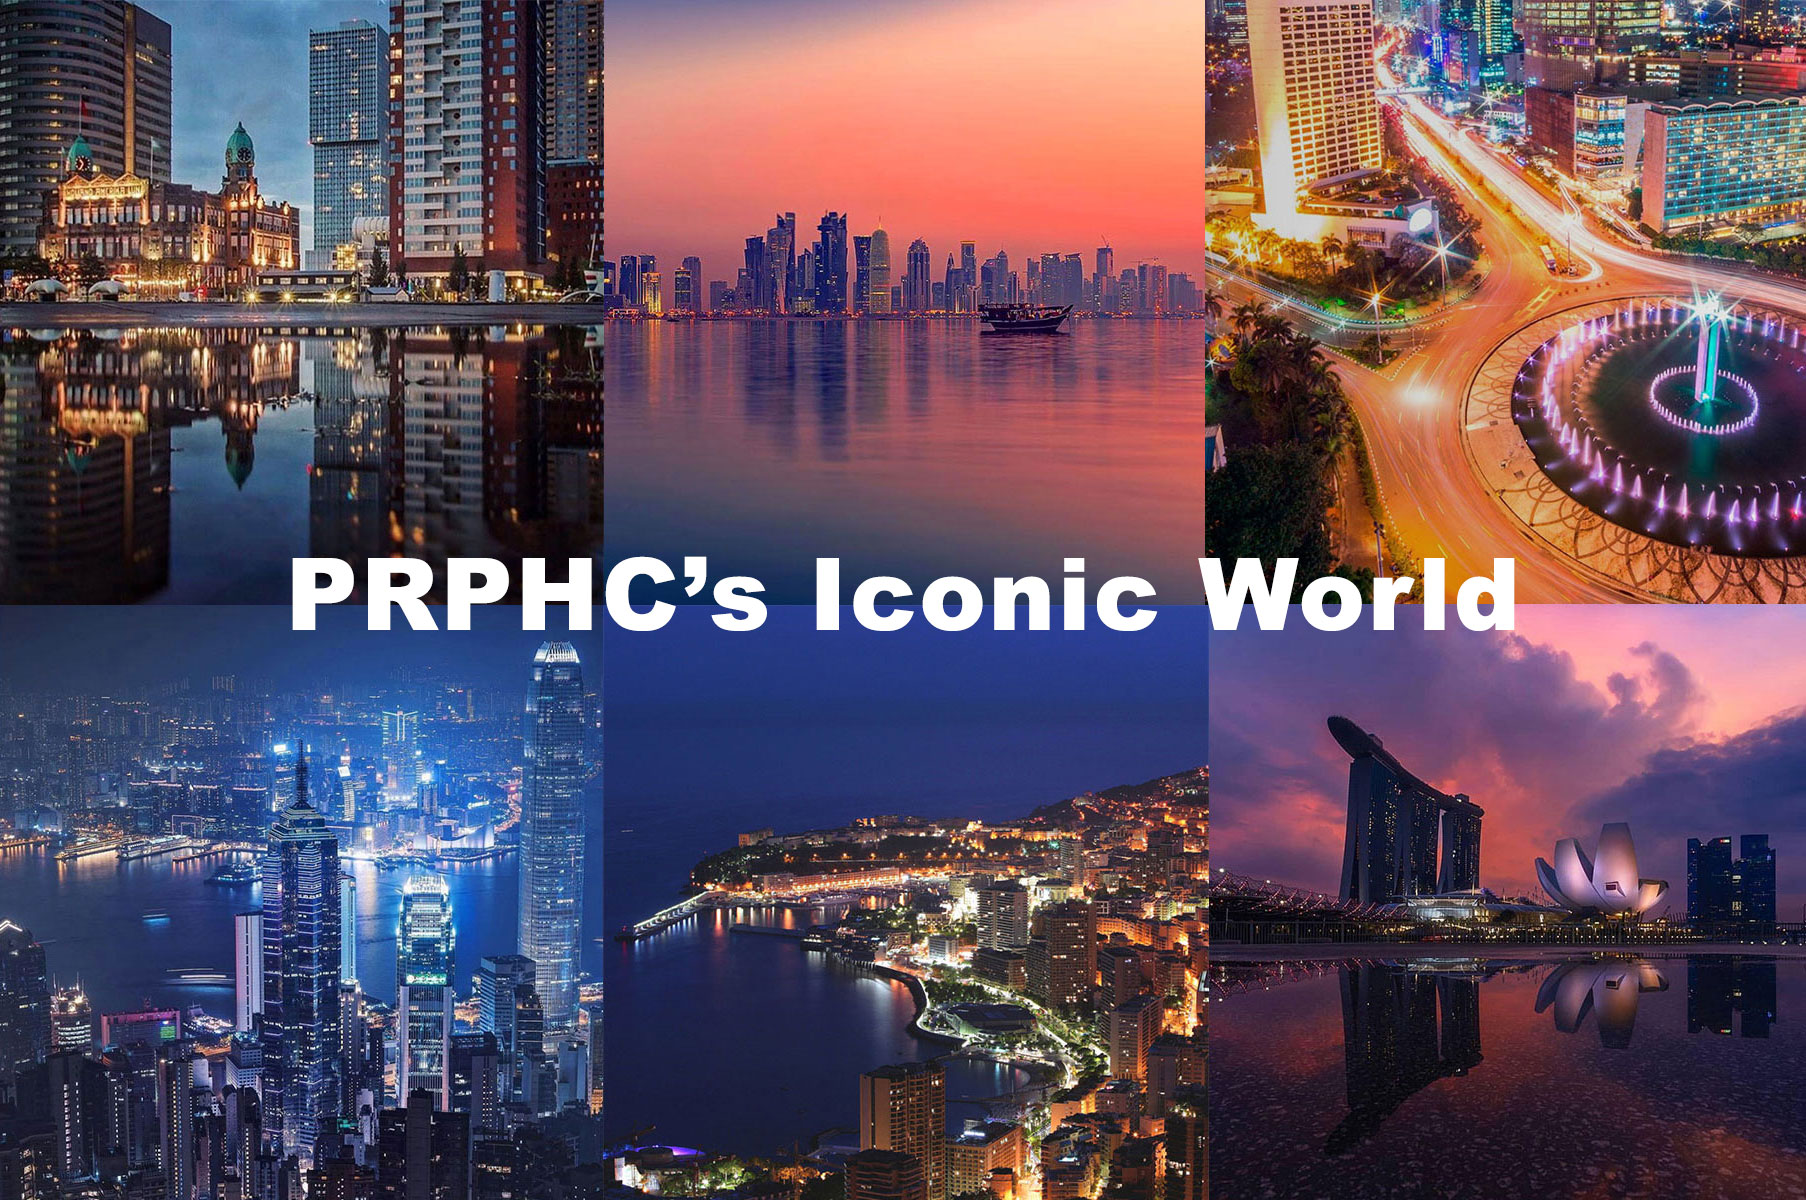 The Iconic World of PRPHC